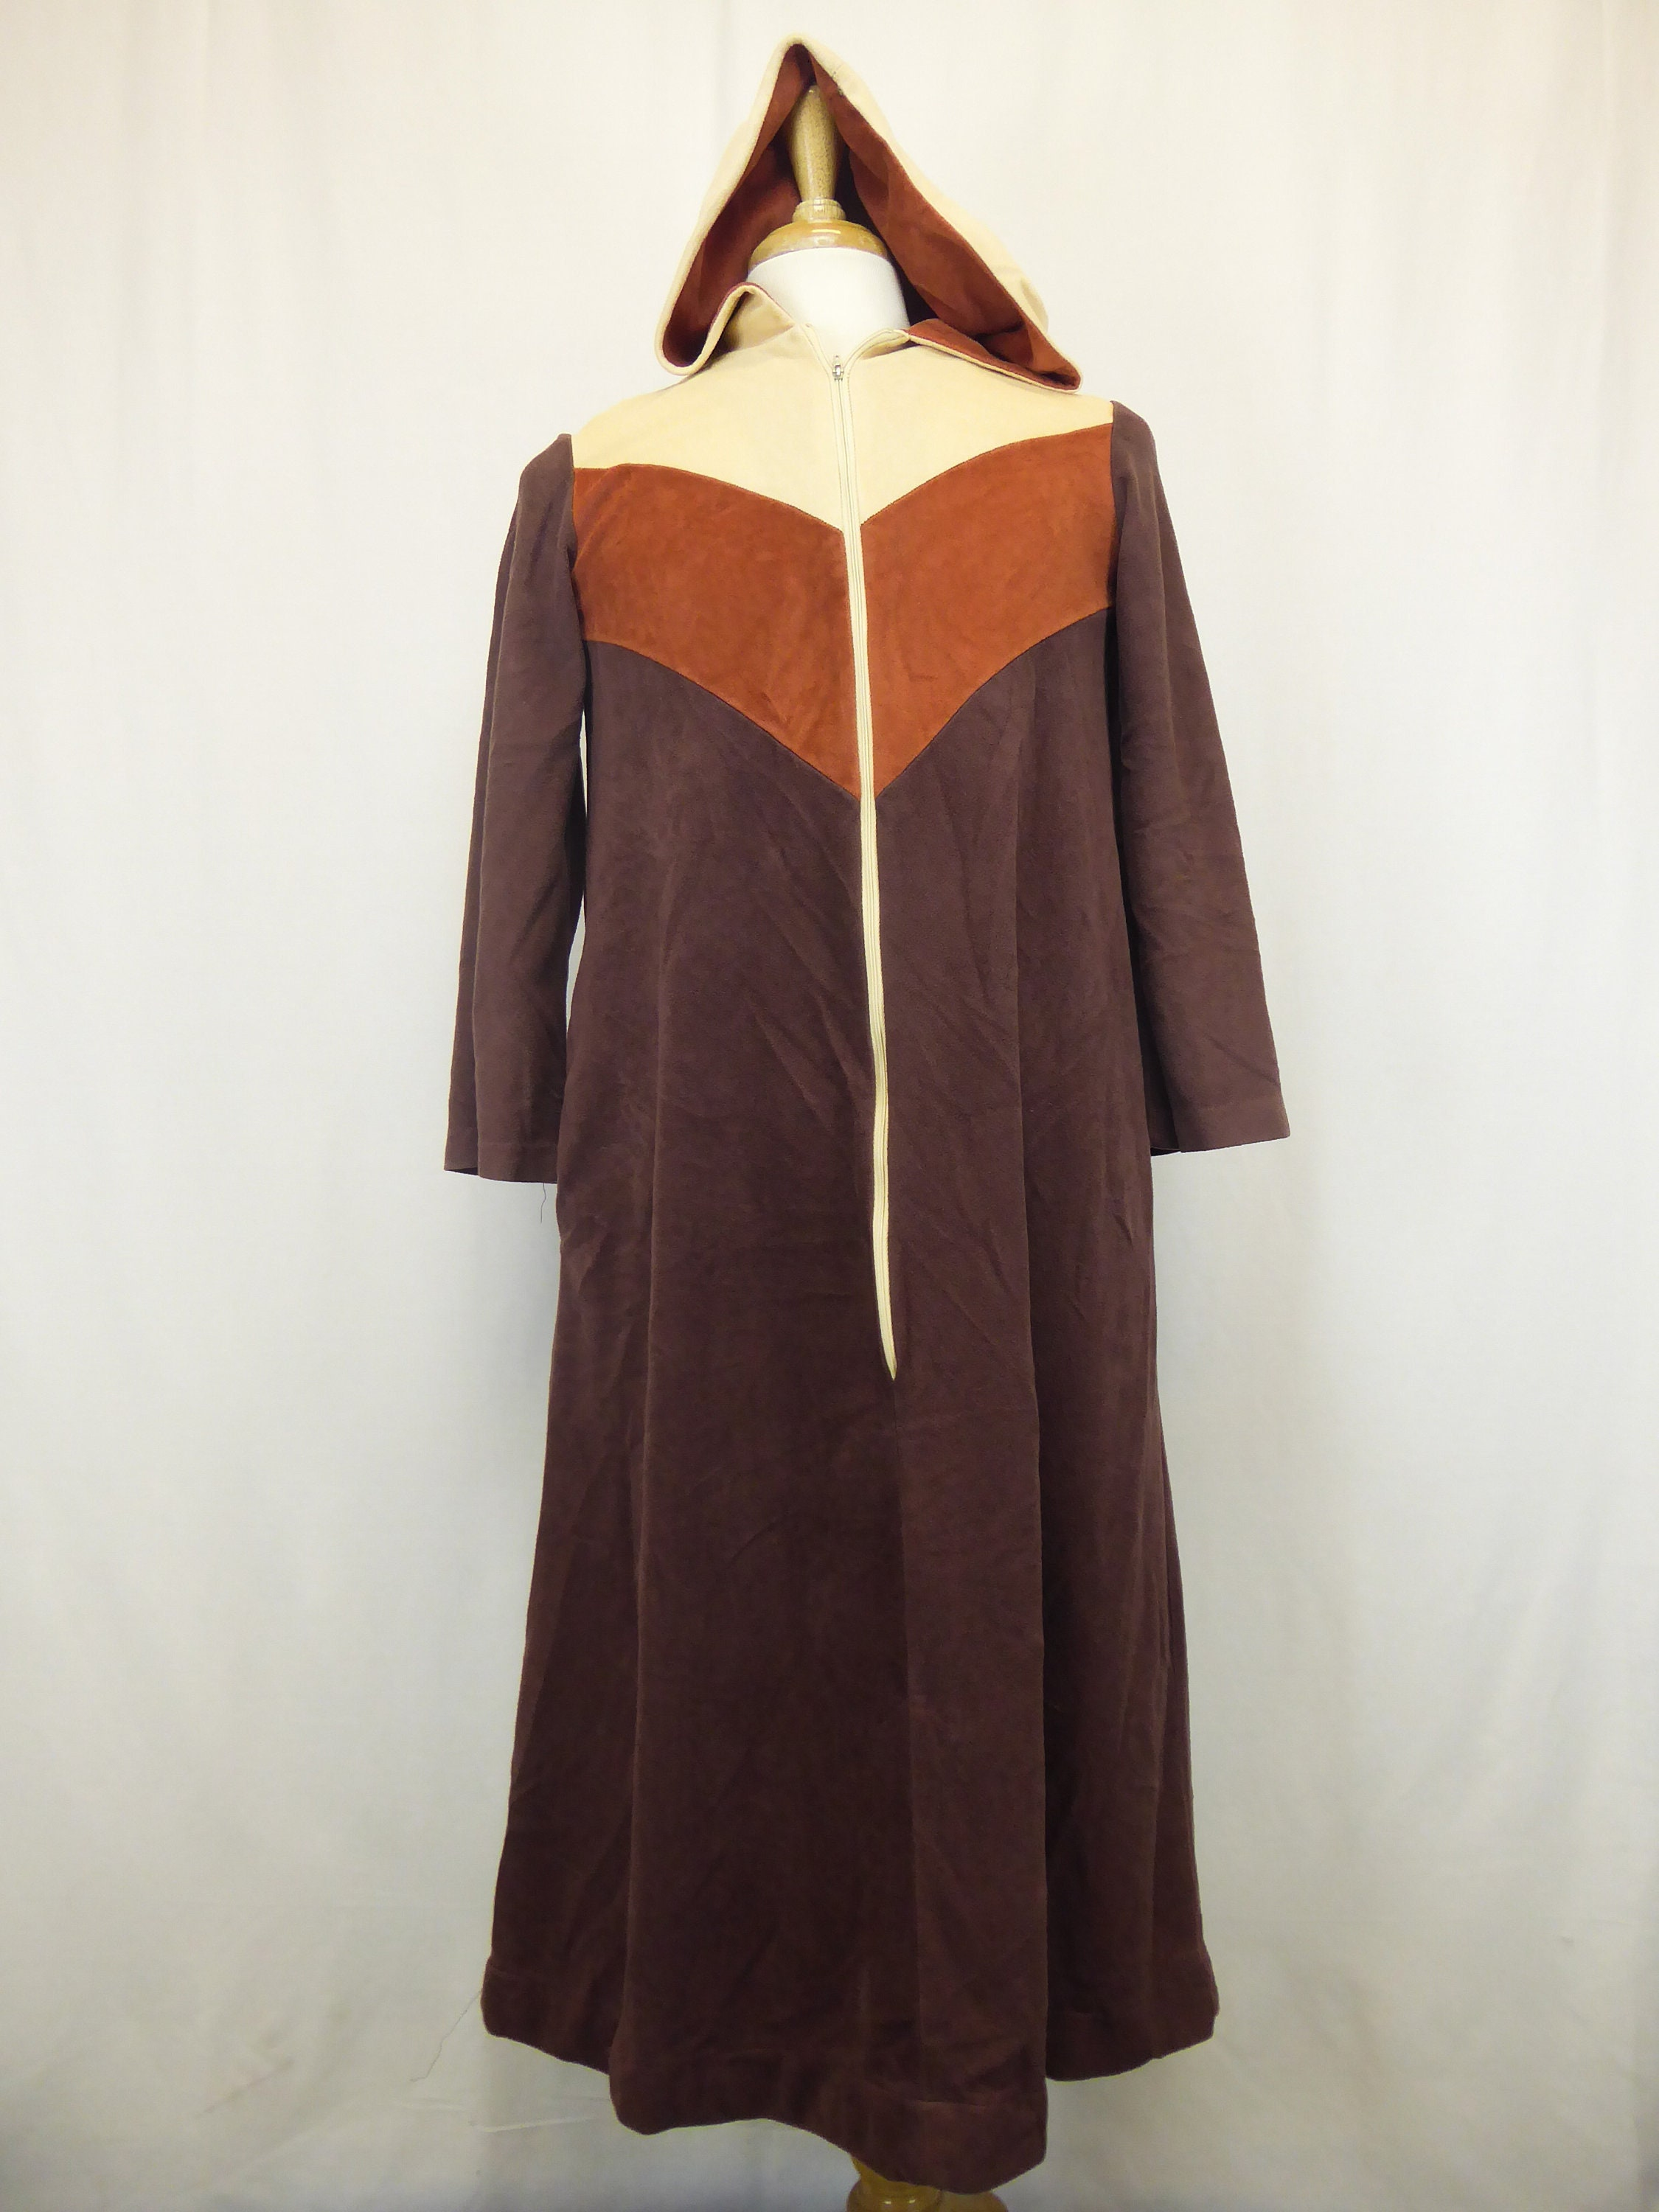 035b8774ea8ee 70s Terry Cloth Robe, Vintage Hooded Robe, Unisex Size Small, Brown/Tan,  Zip Up Robe, Beach Pool Coverup, Smart Time